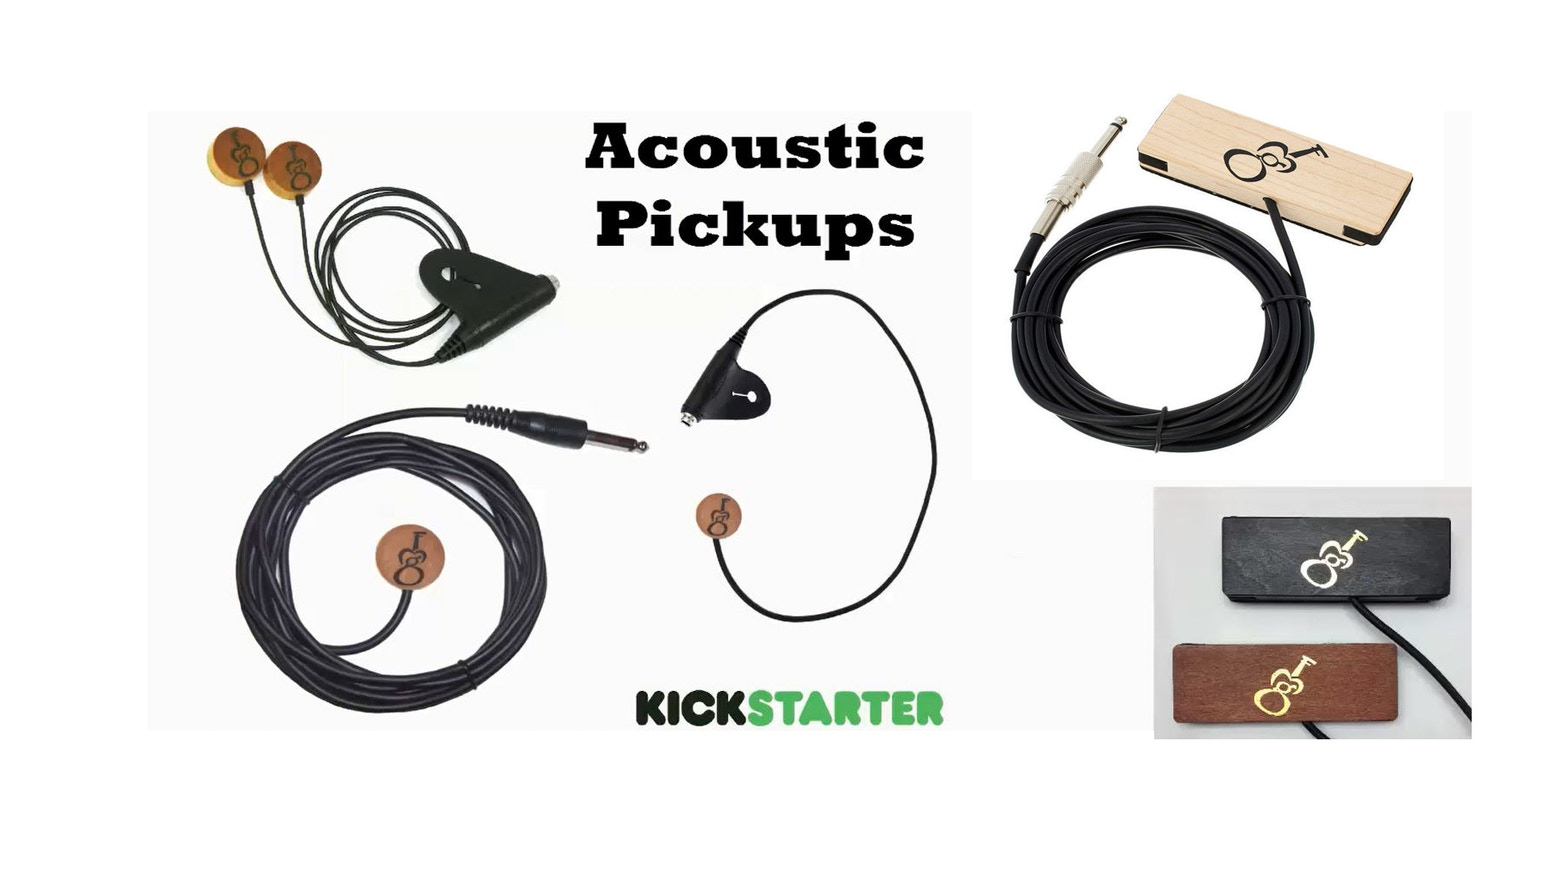 Gmf Acoustic Pickups For Guitars And Stringed Instruments By Basic Electric Guitar Circuits Part 1 Is Building A Line Of That Are High Quality Easy To Install